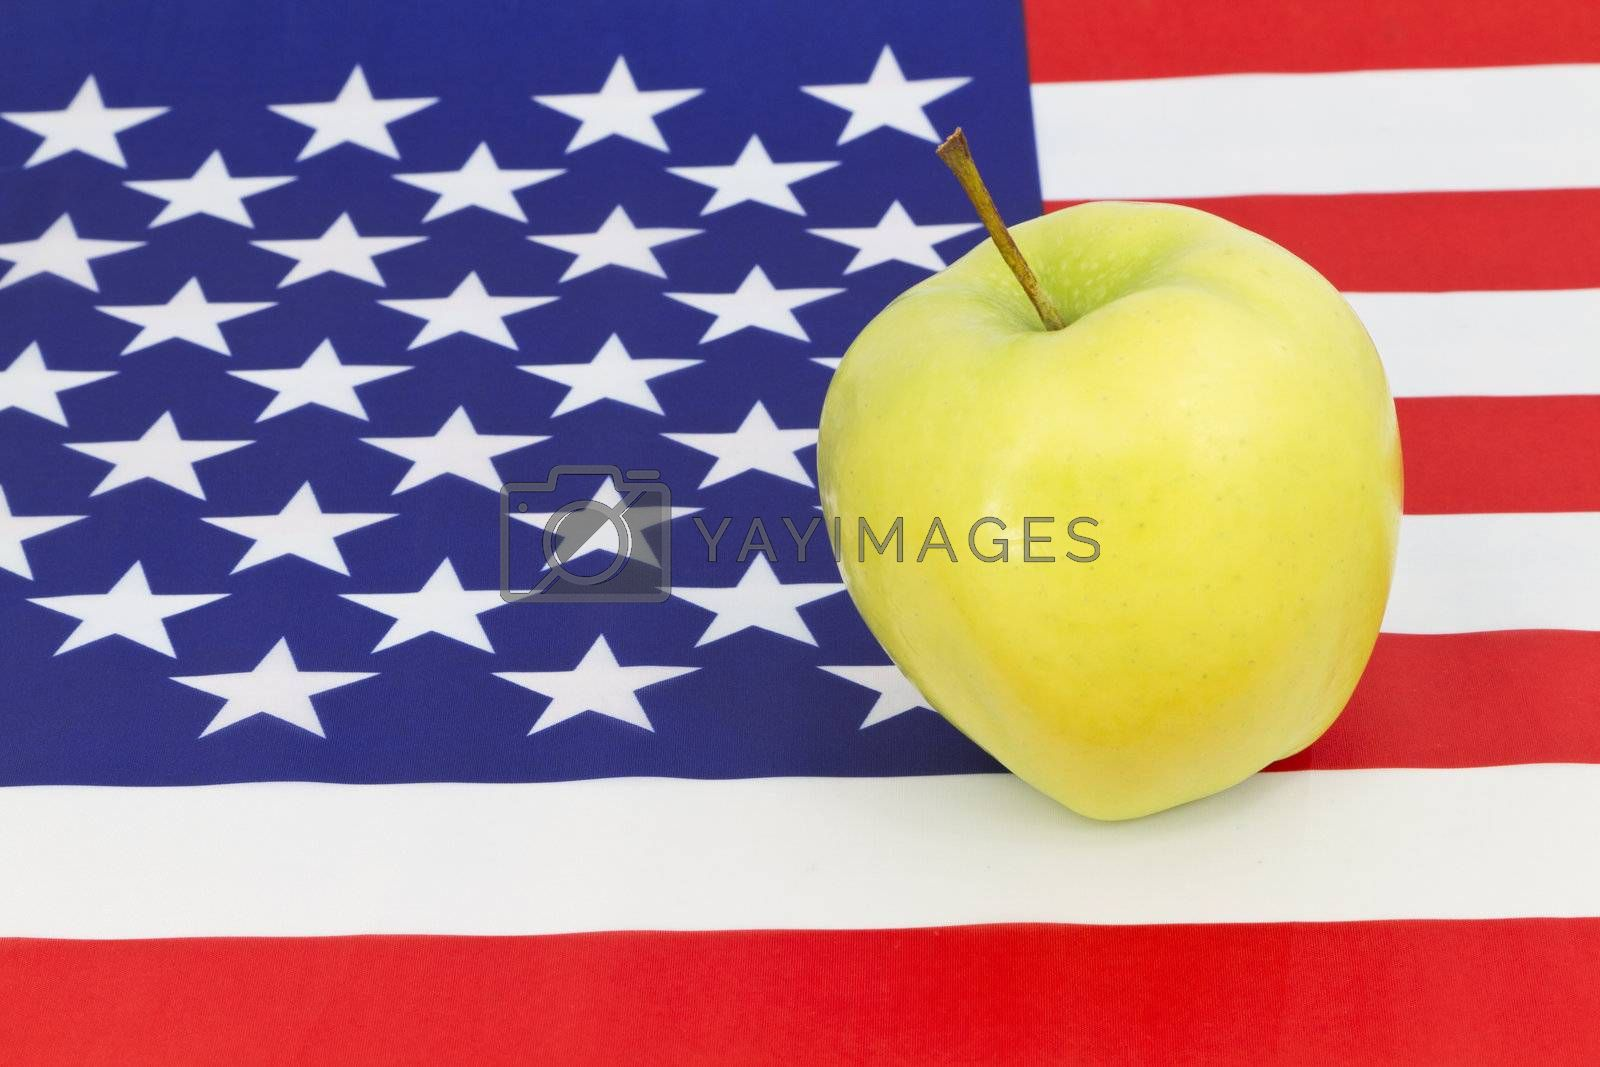 Golden apple, symbol of education, sits on American flag